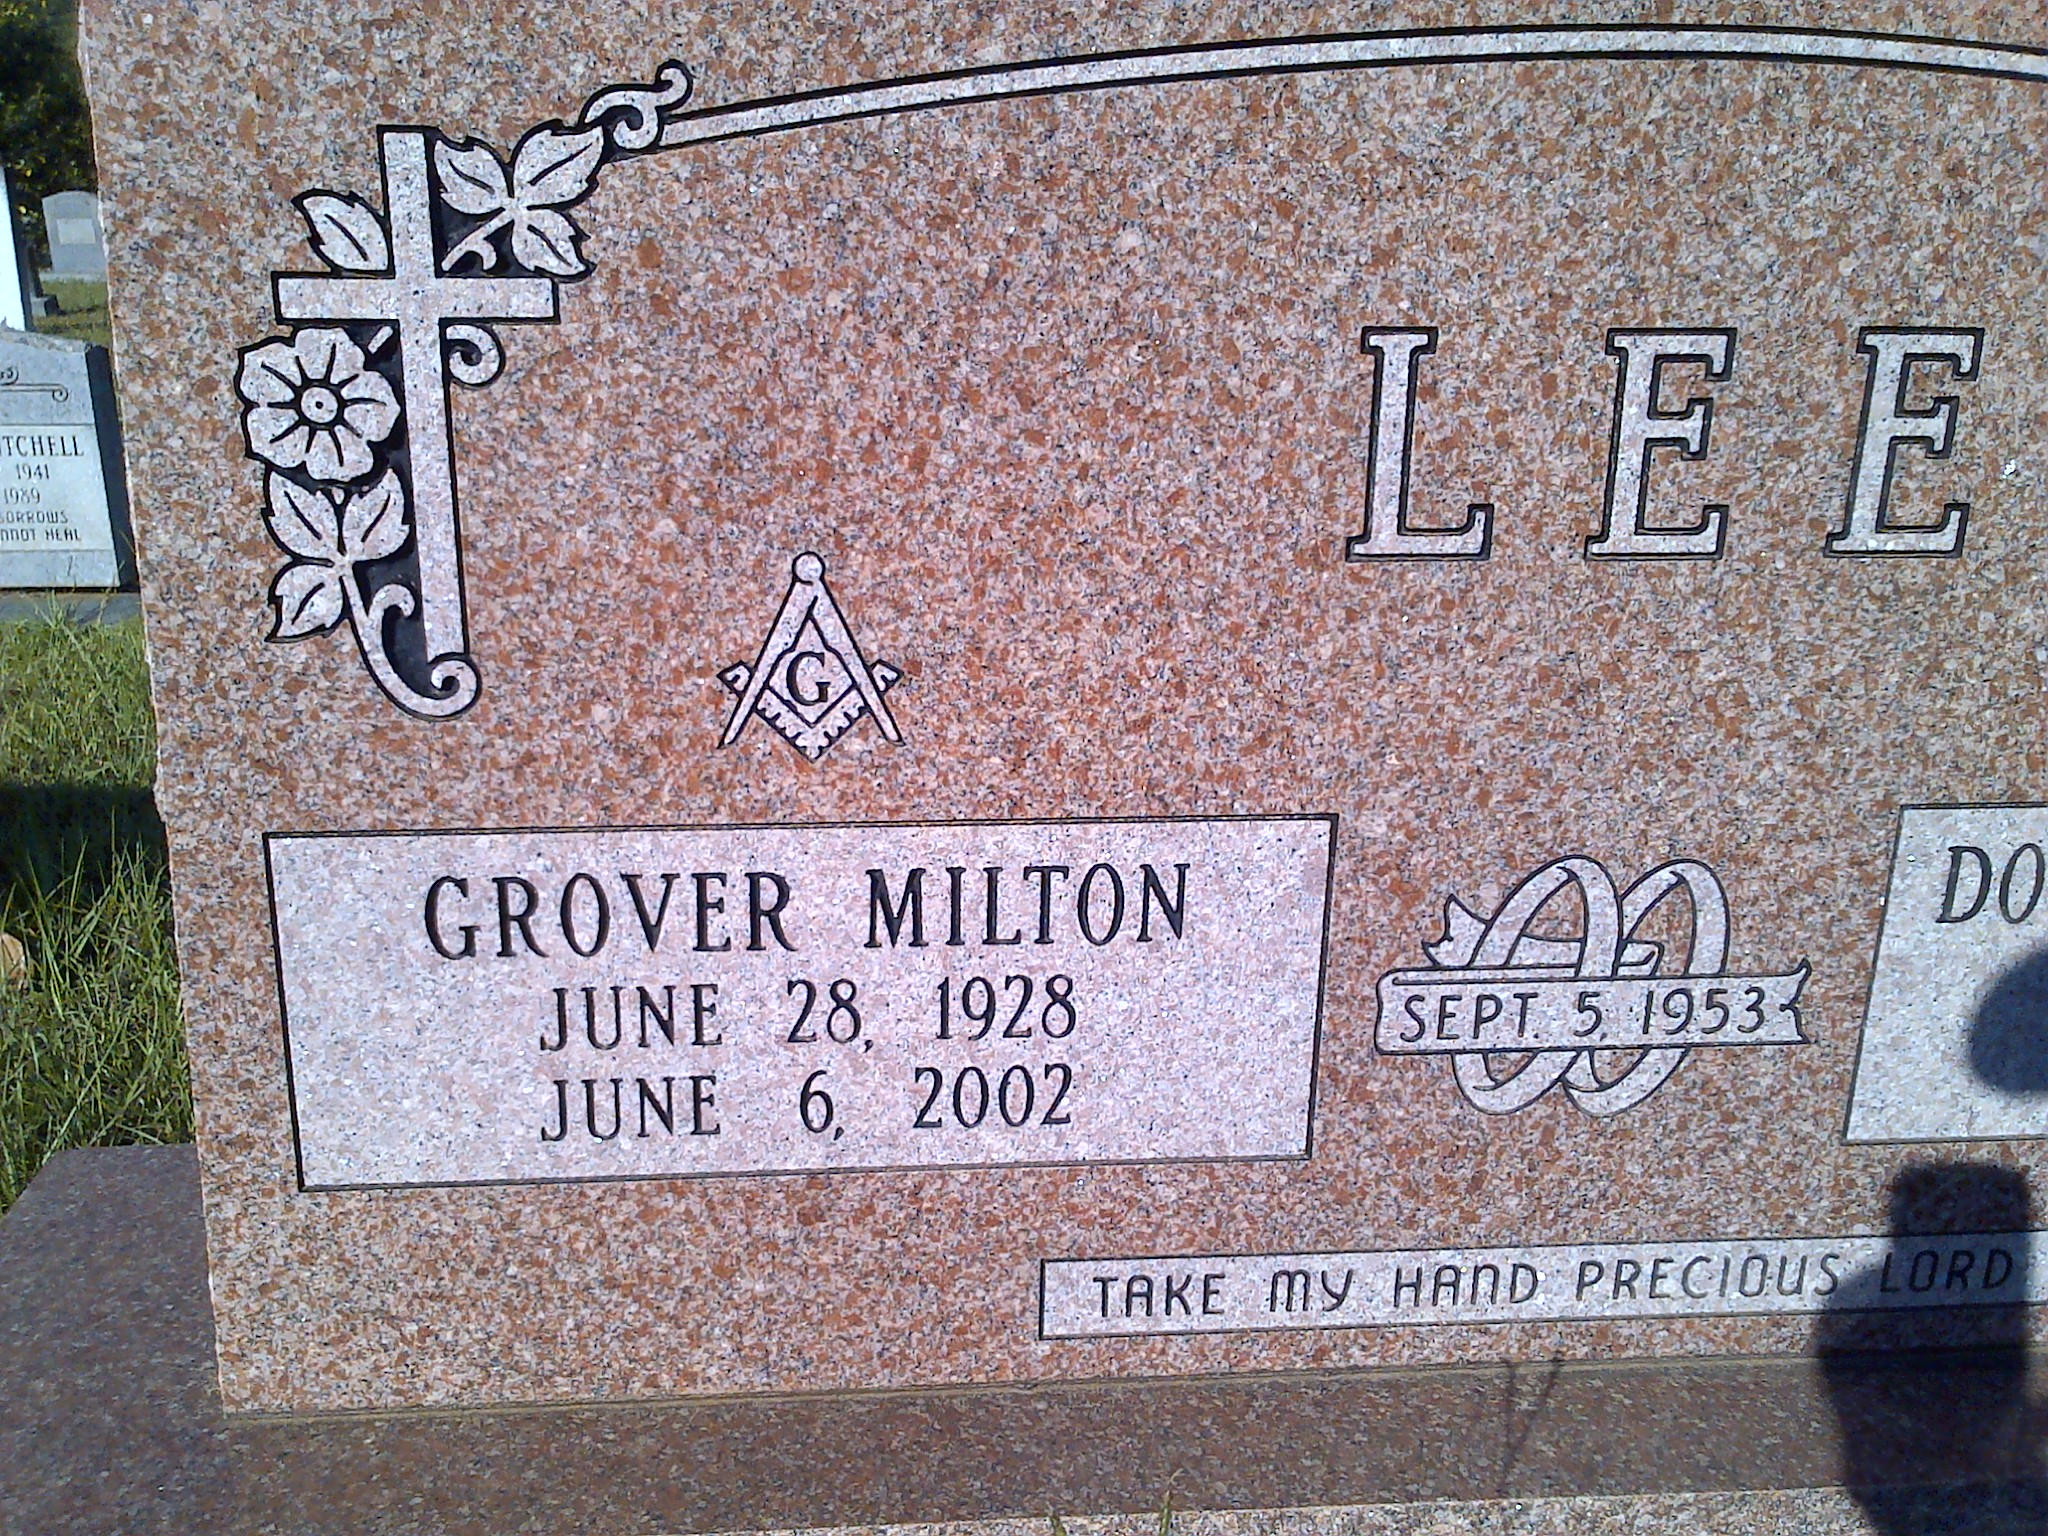 Grover Milton Lee